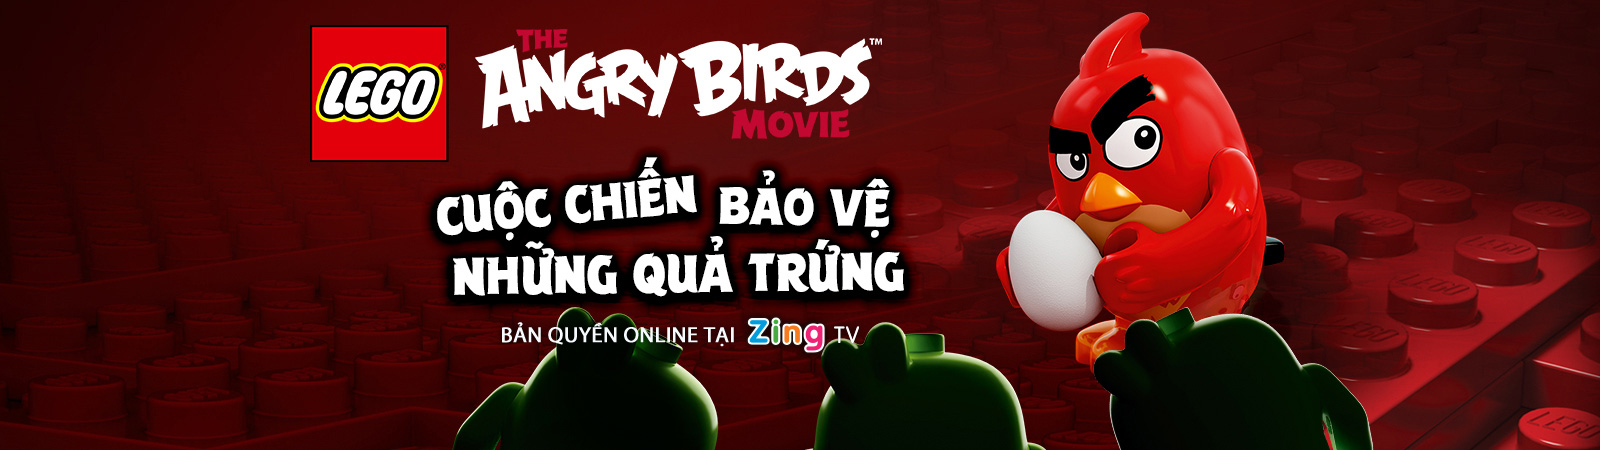 LEGO® Angry Birds Movie